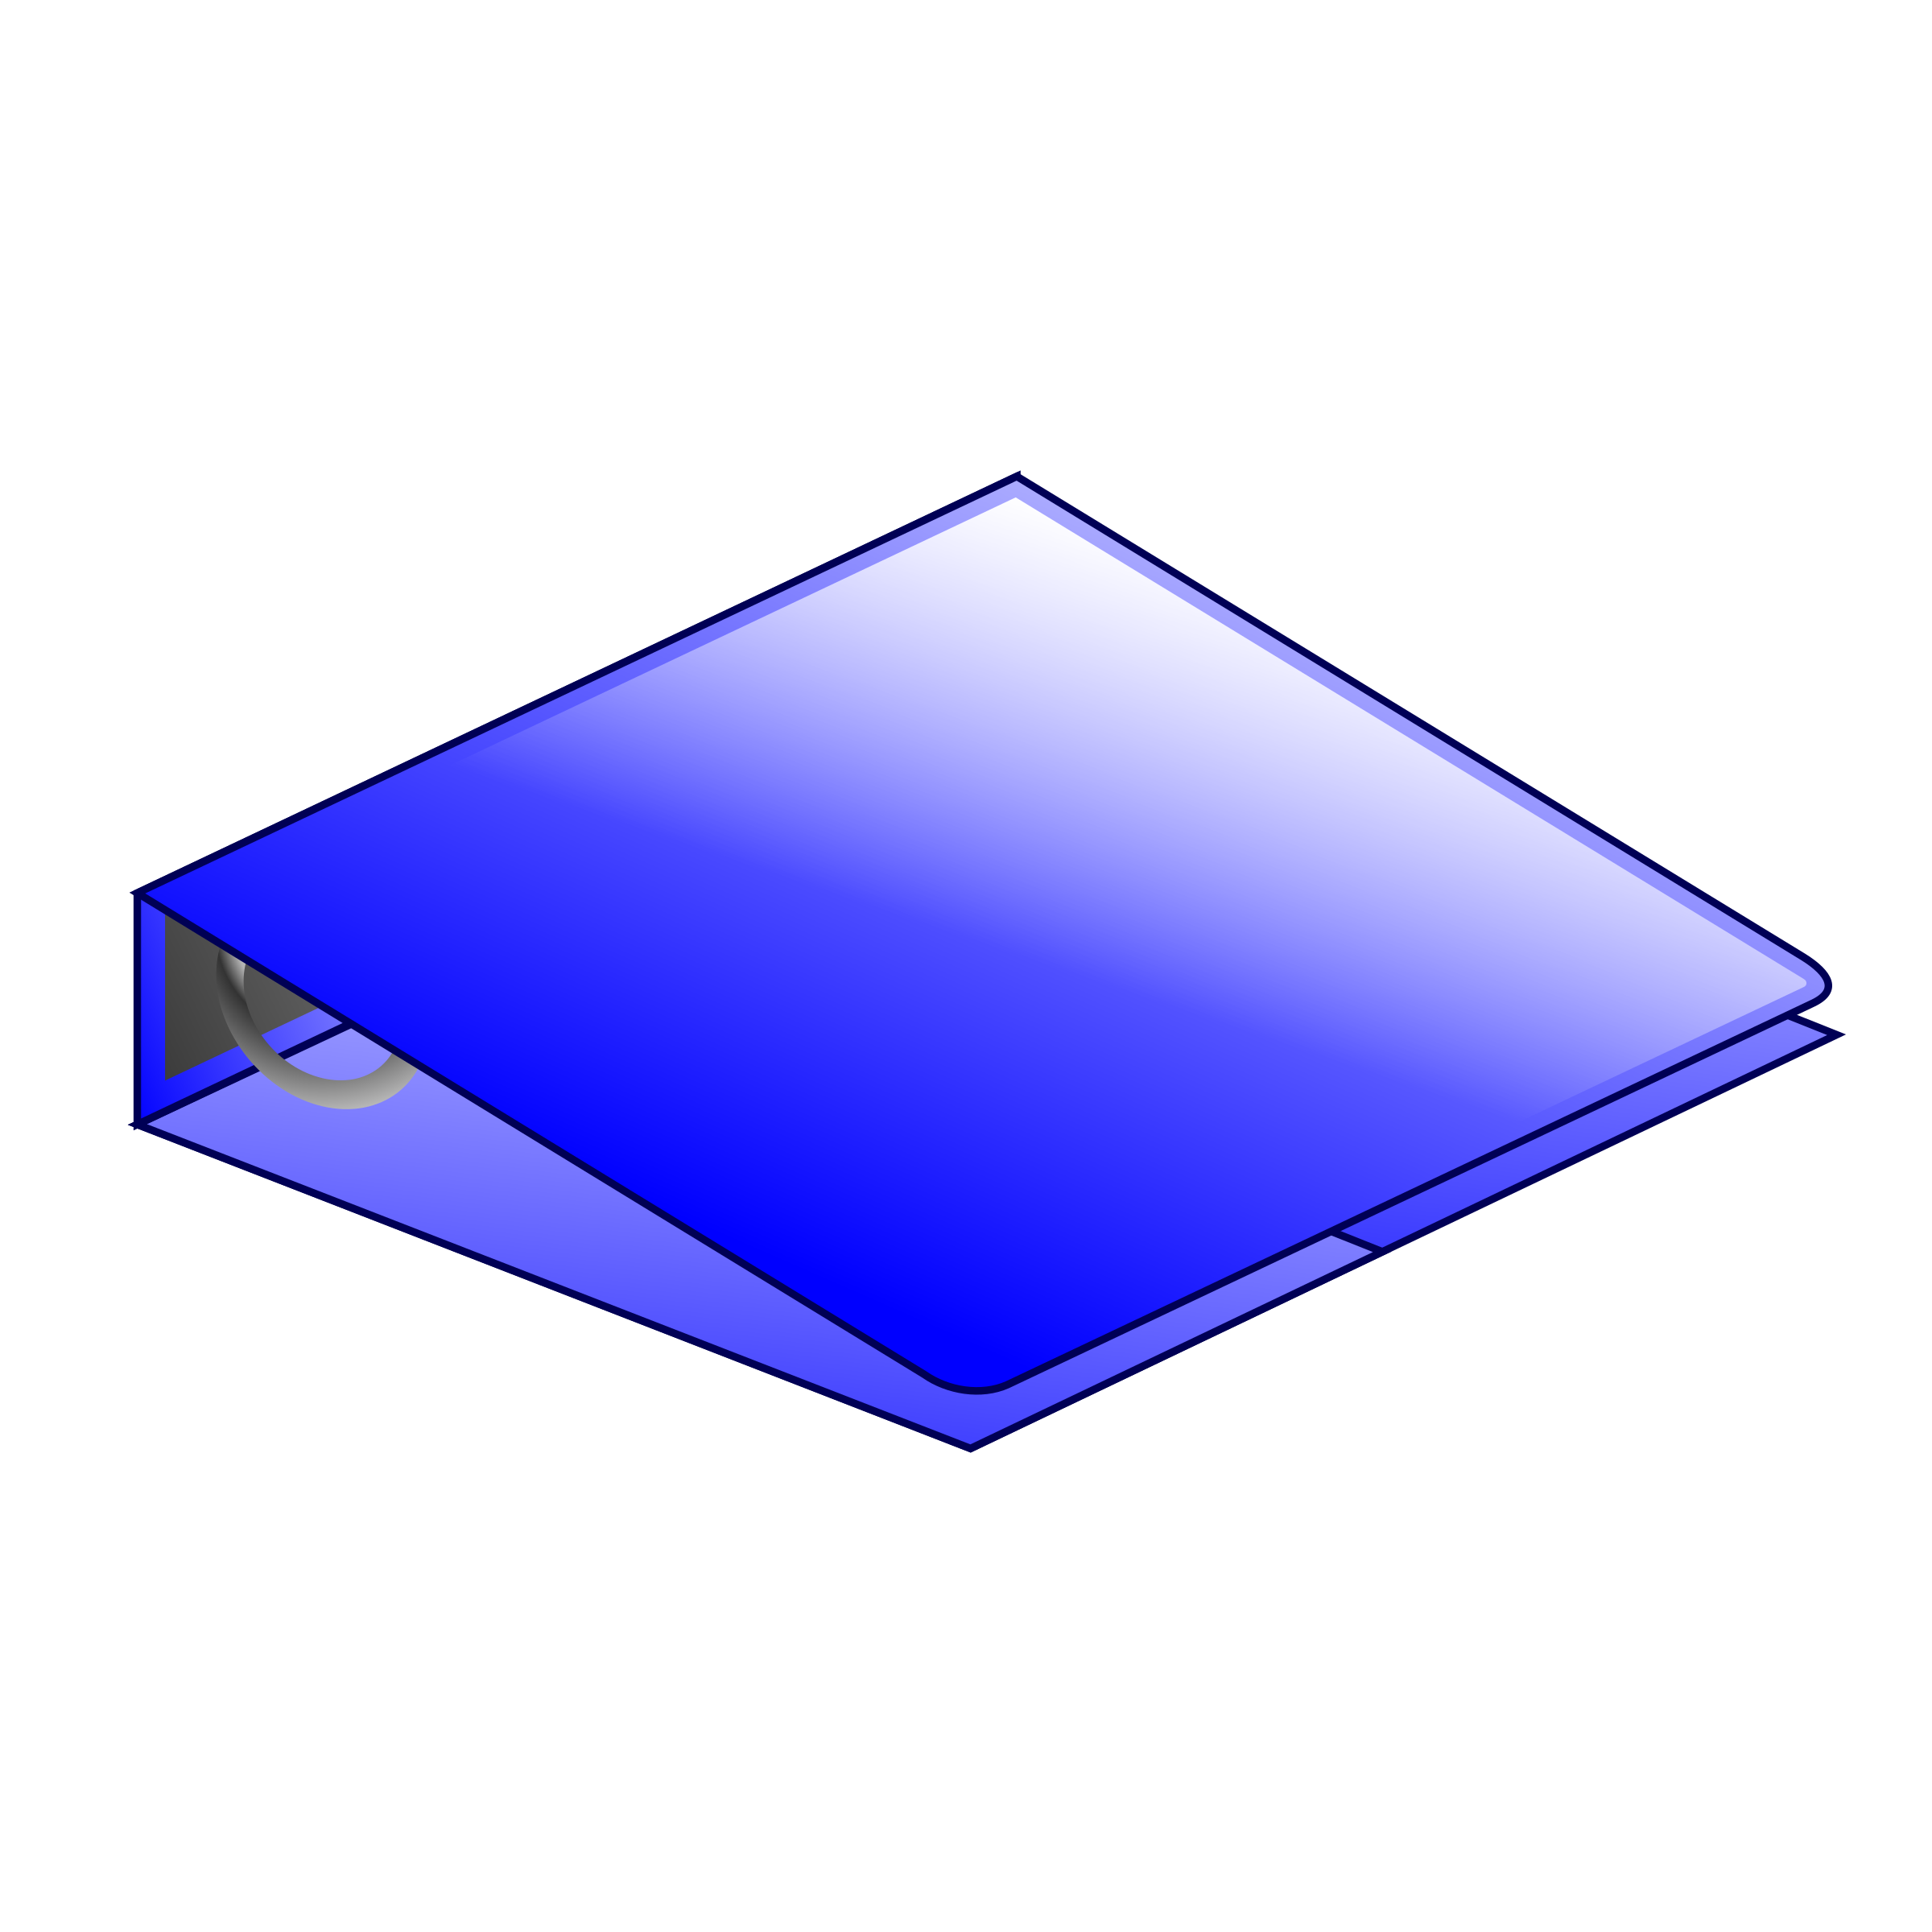 Blue 3-ring binder by jhnri4